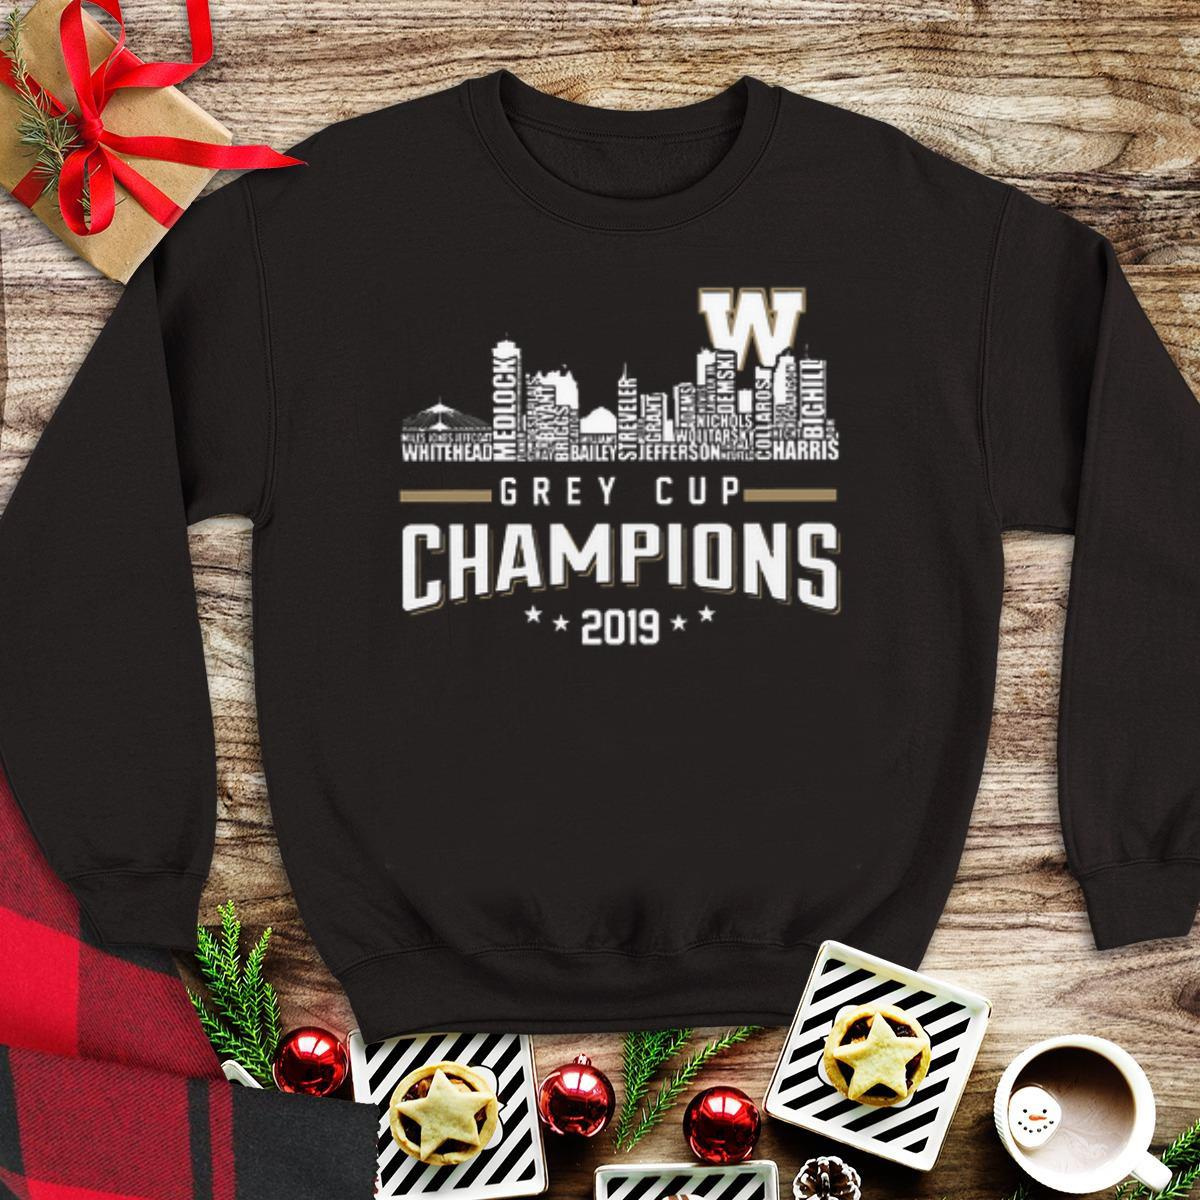 Awesome 107th Grey Cup Blue Bombers Building Players Champions 2019 sweater